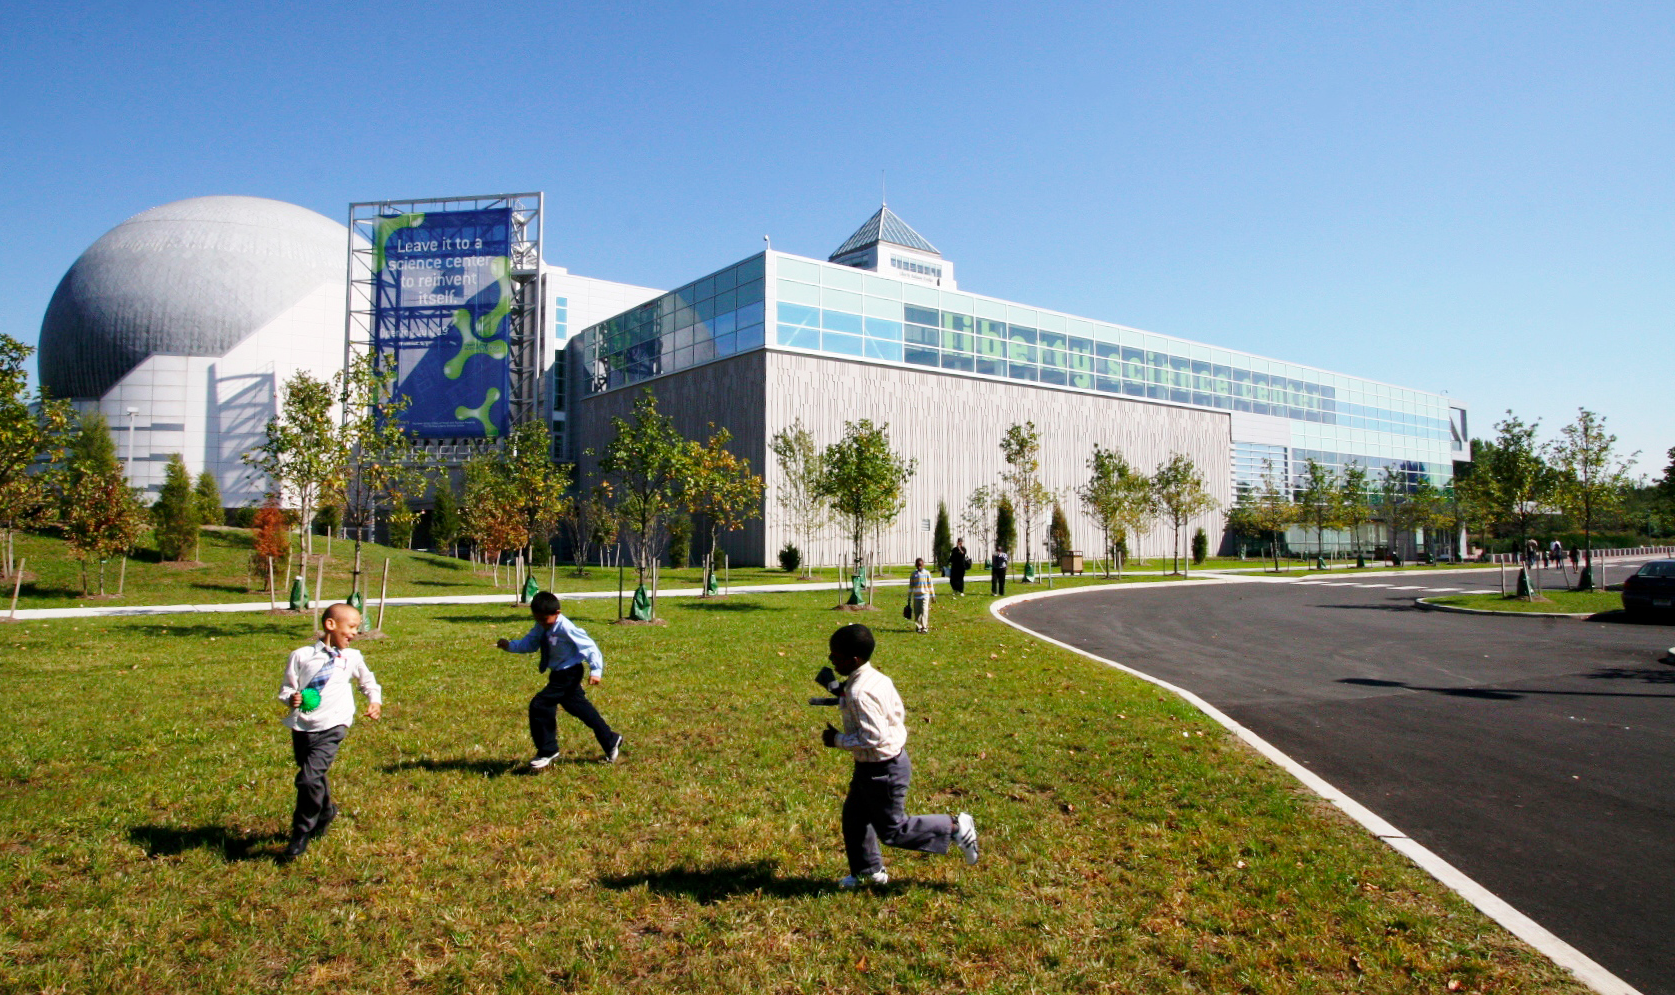 lsc_building-2 'Day of Drones' Comes to New Jersey's Liberty Science Center